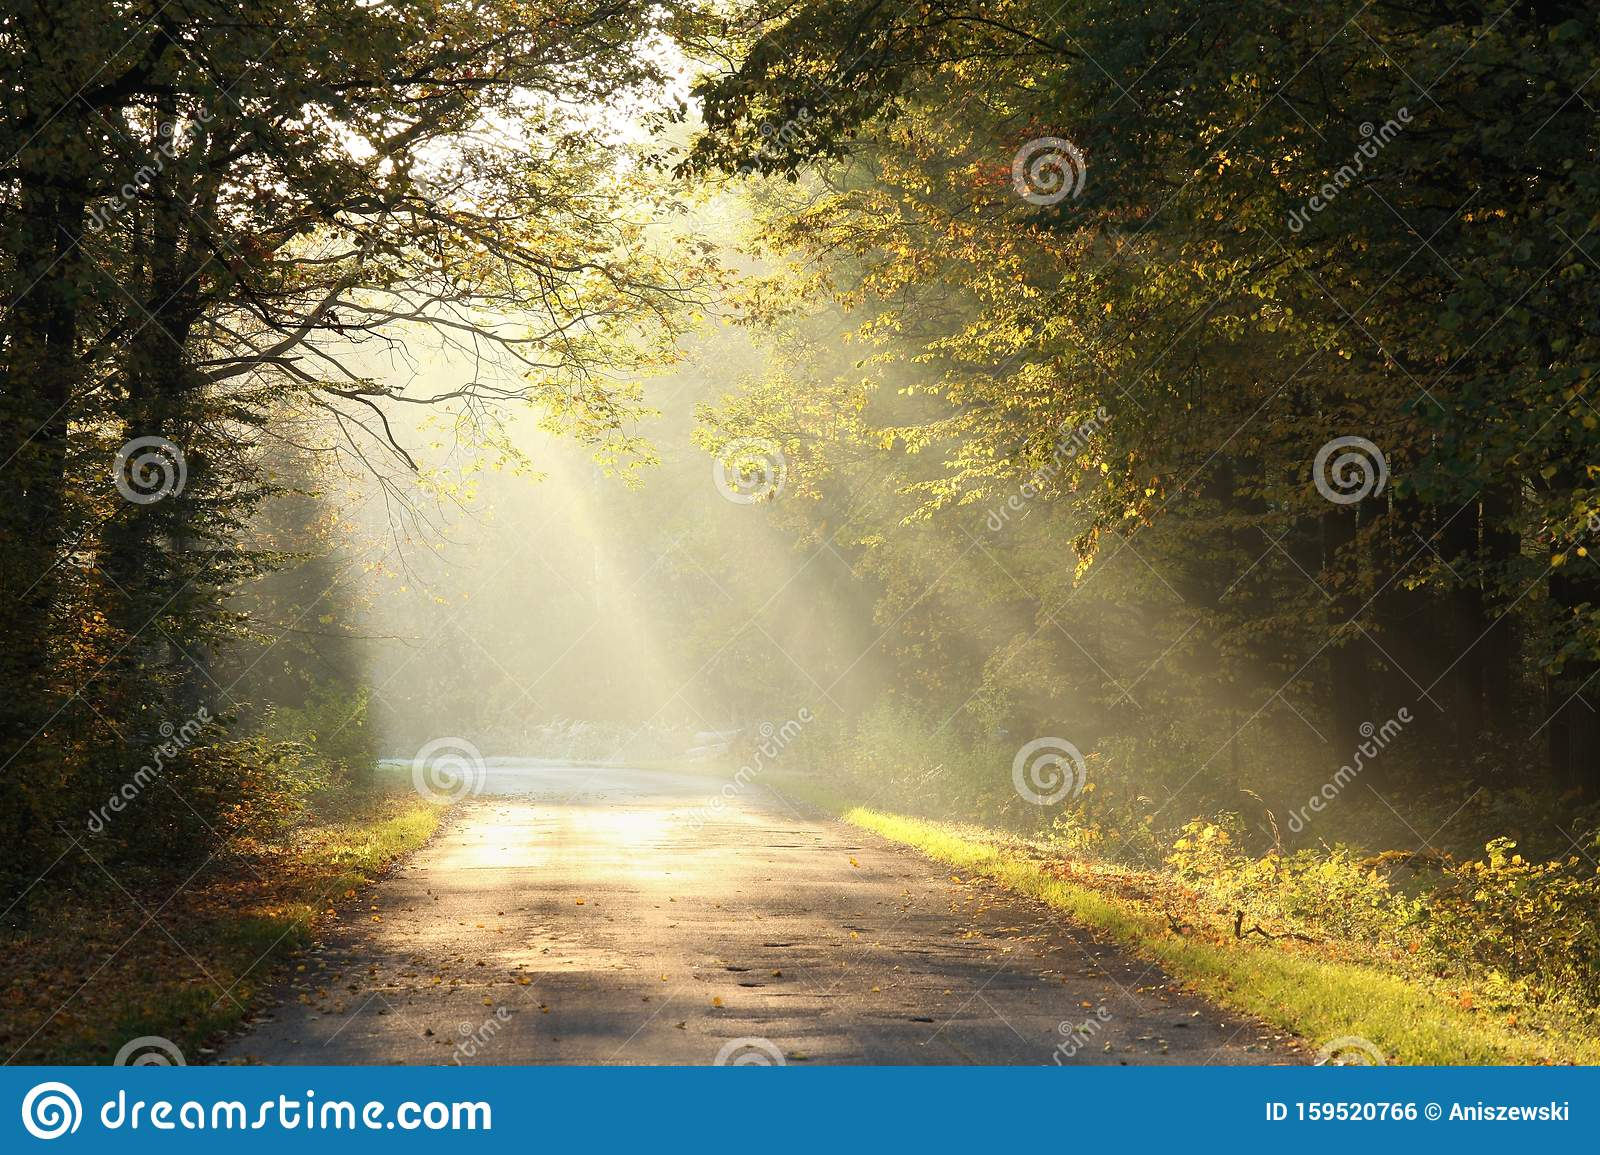 Path Through Foggy Autumn Forest At Sunrise Country Road Through Autumn Deciduous Forest On A Misty Sunny Morning Light Of The Stock Photo Image Of Autumn Misty 159520766 Autumn fog trees forest alley road